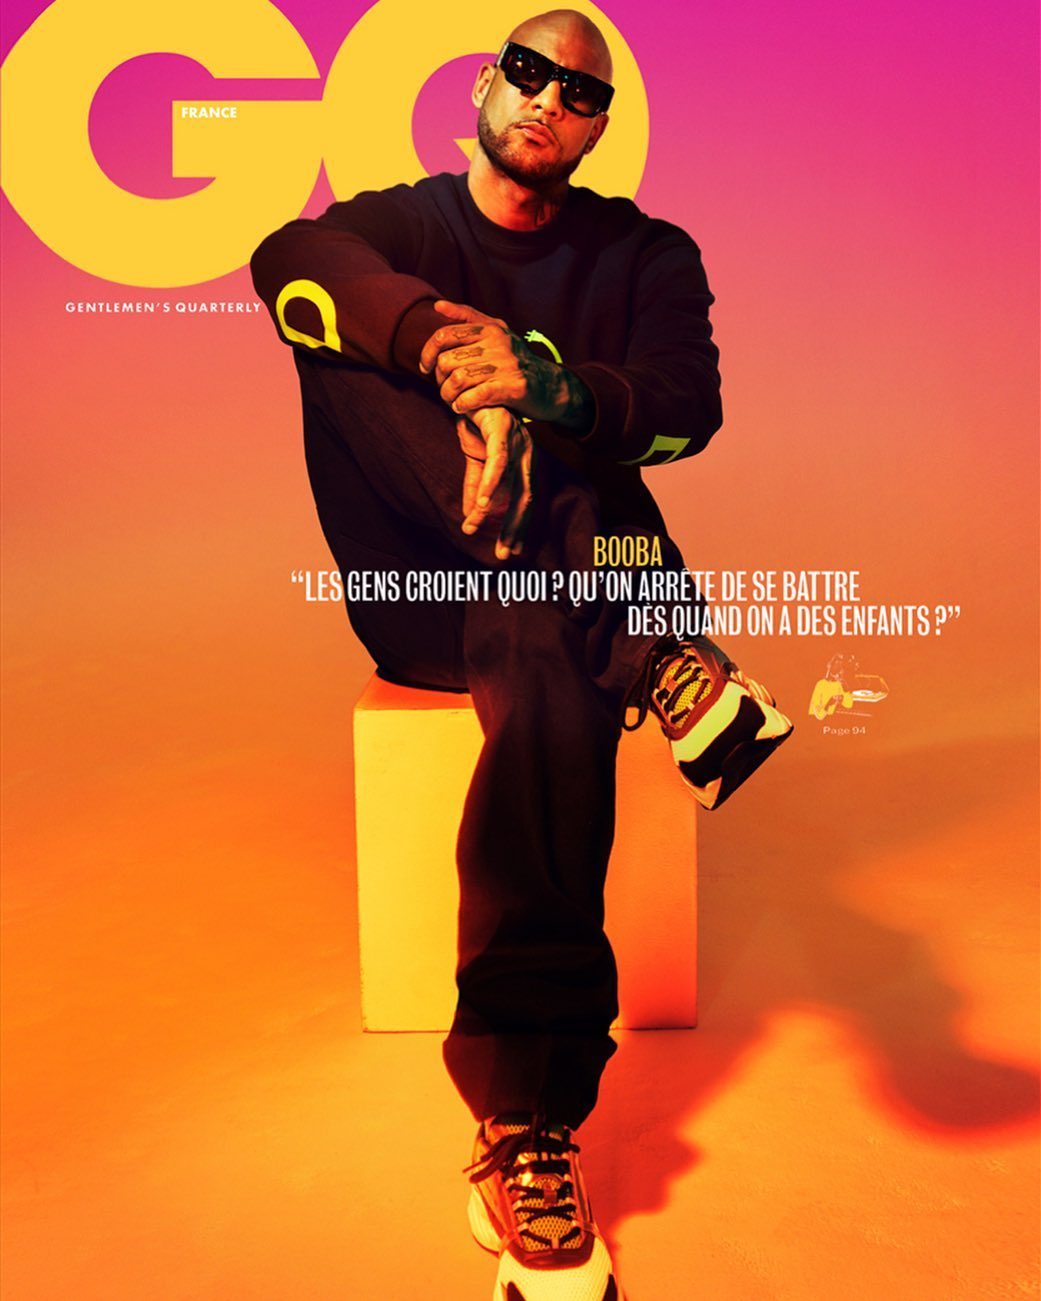 Pari Dukovic Photographs French Rapper Booba for Cover of GQ France